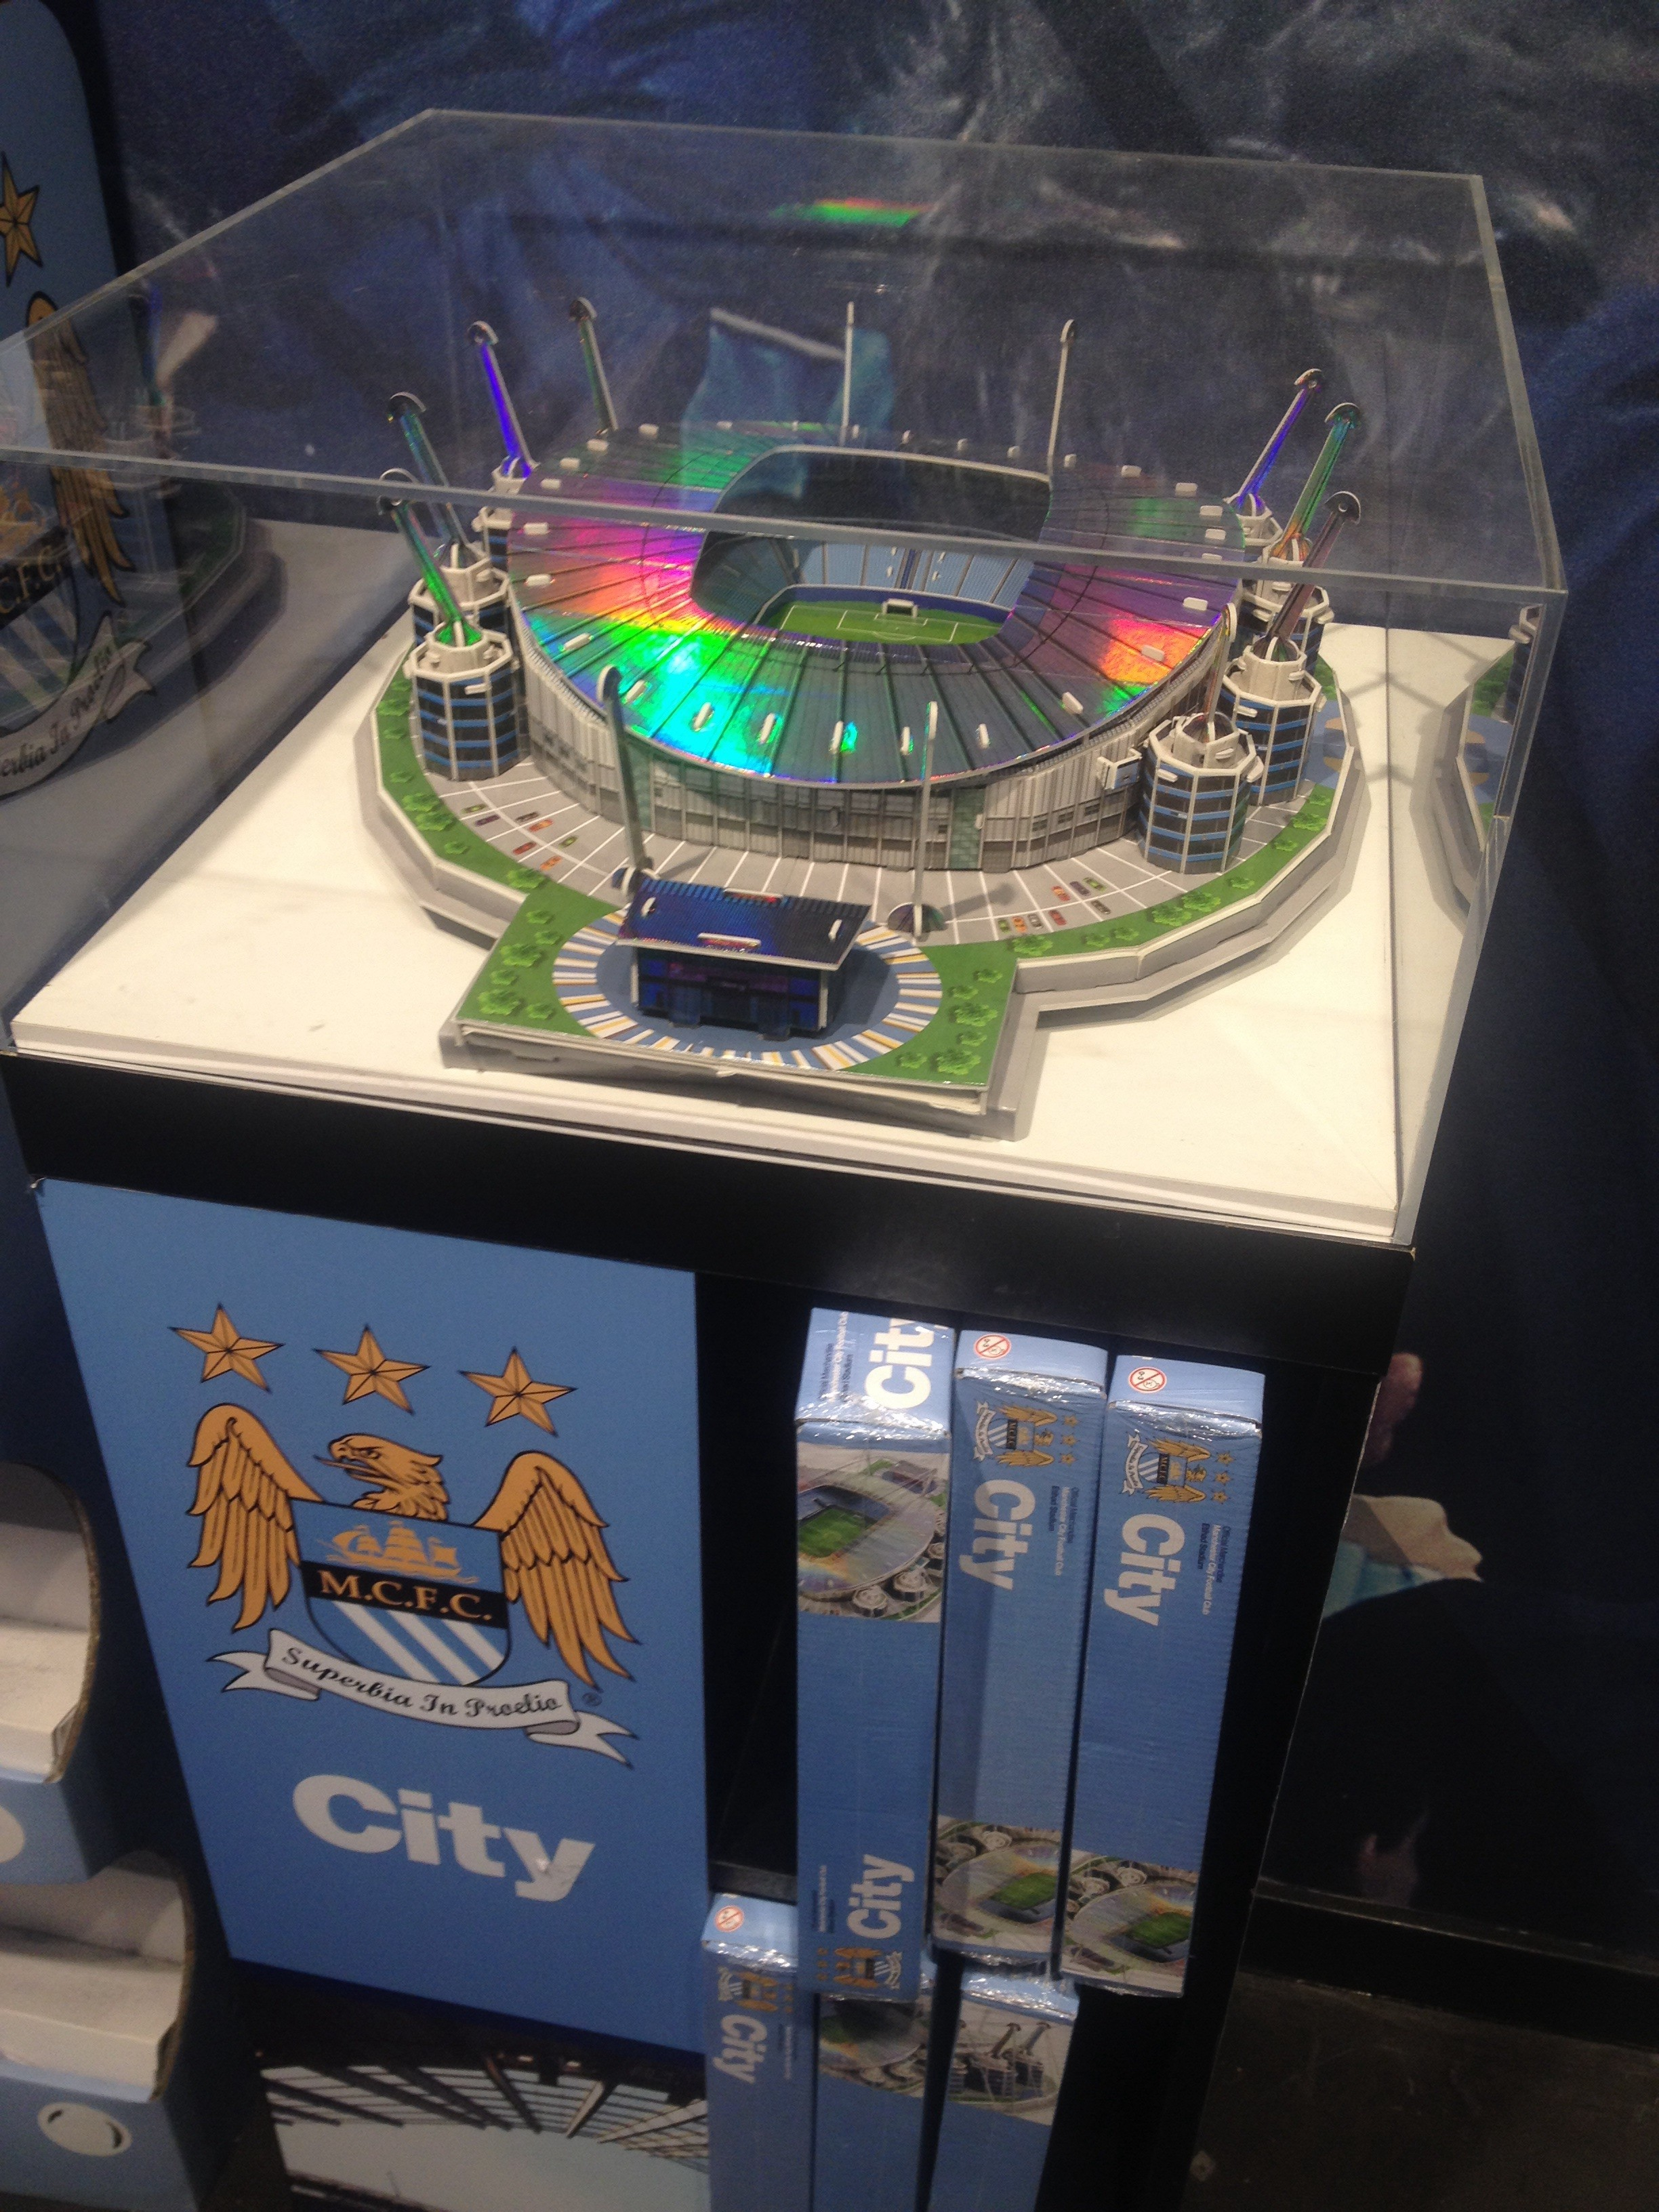 Love this idea. Manchester City stadium in kids size!